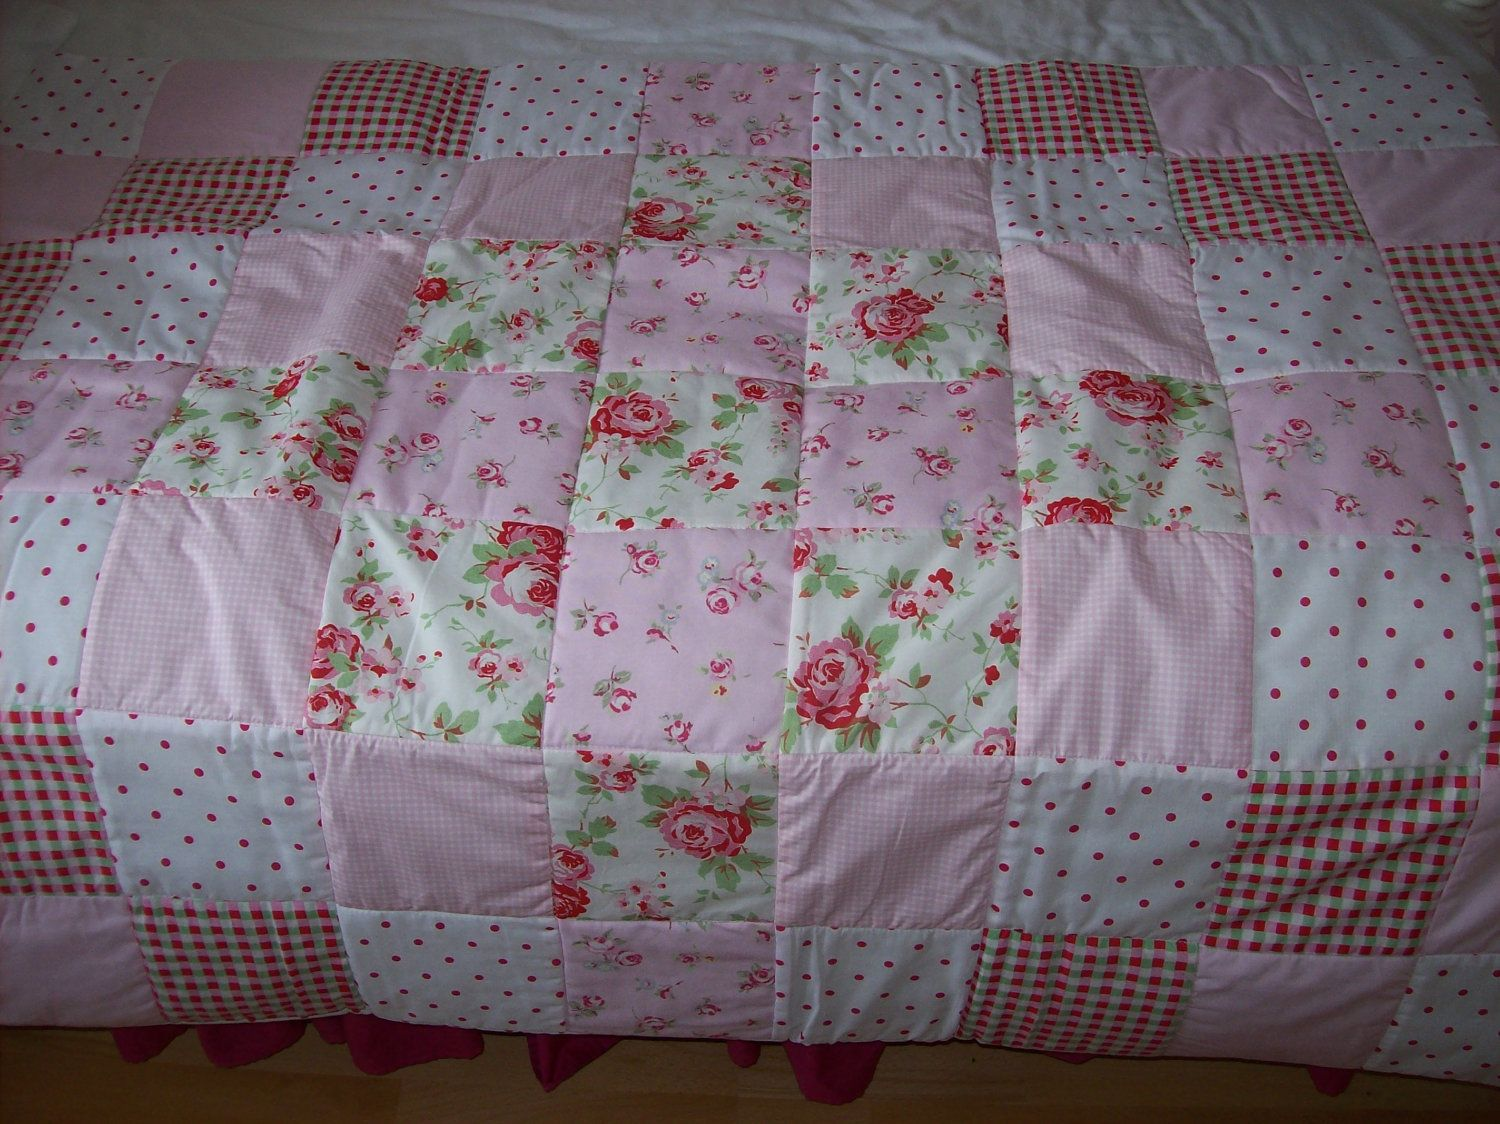 shabby chic quilts | Cath Kidston Shabby Chic Patchwork Cot or bed ... : shabby chic patchwork quilts - Adamdwight.com